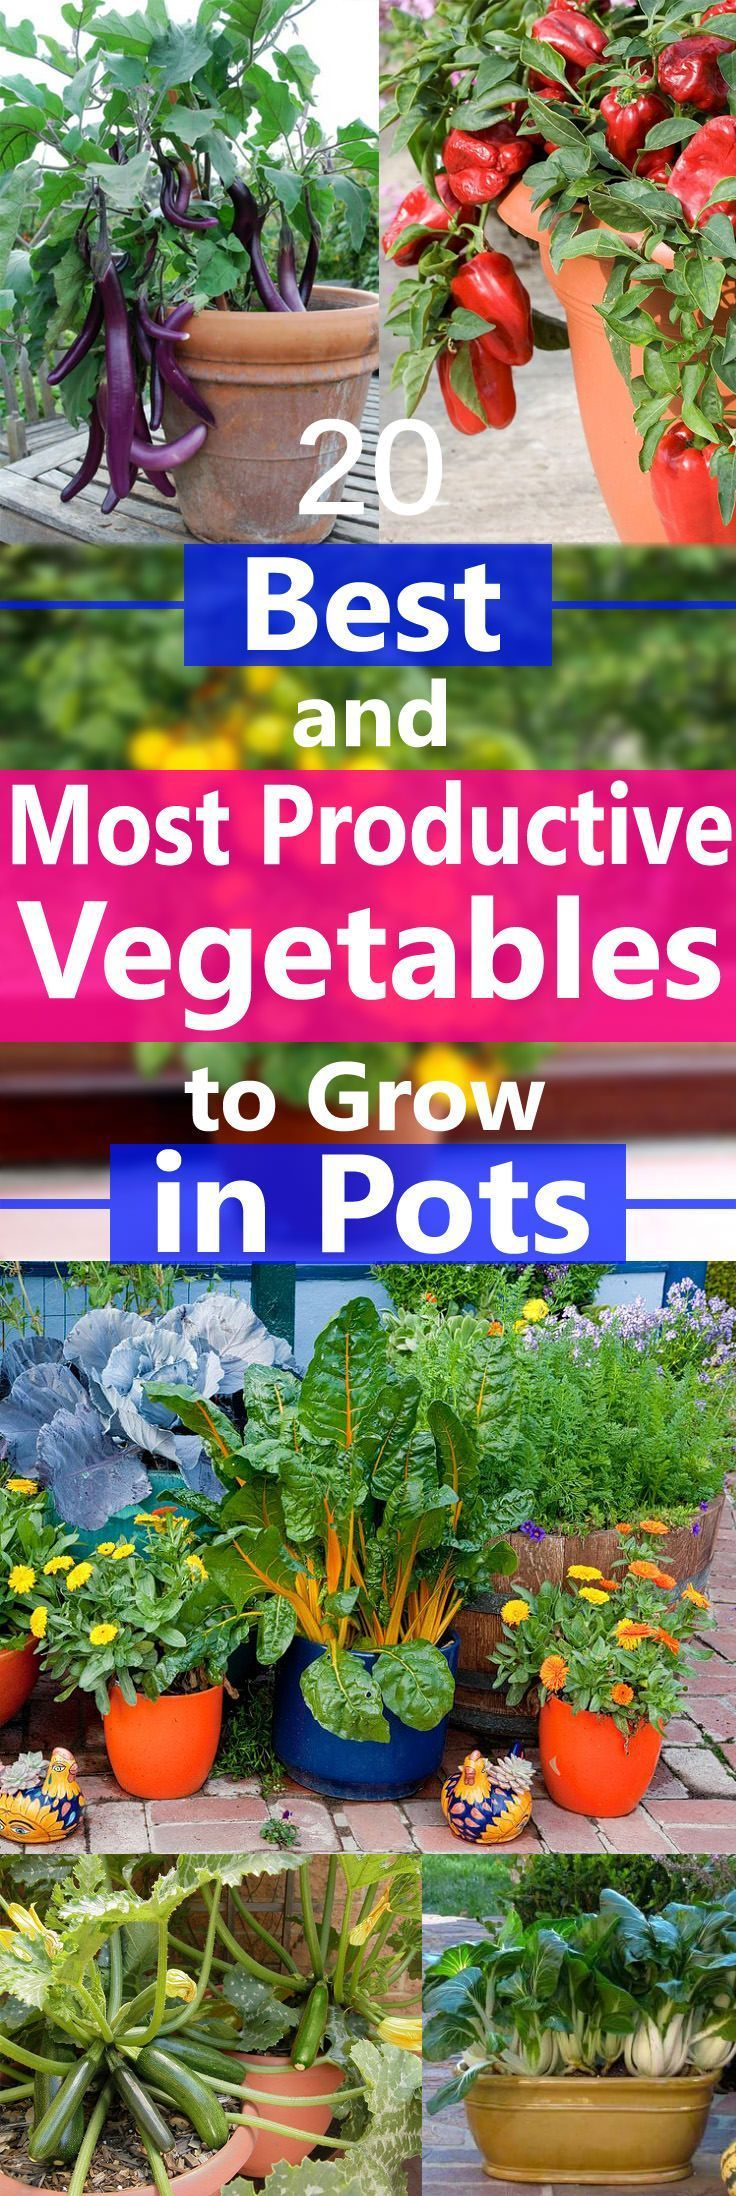 Most beautiful vegetable gardens - Best Most Productive Vegetables To Grow In Pots Vegetable Garden